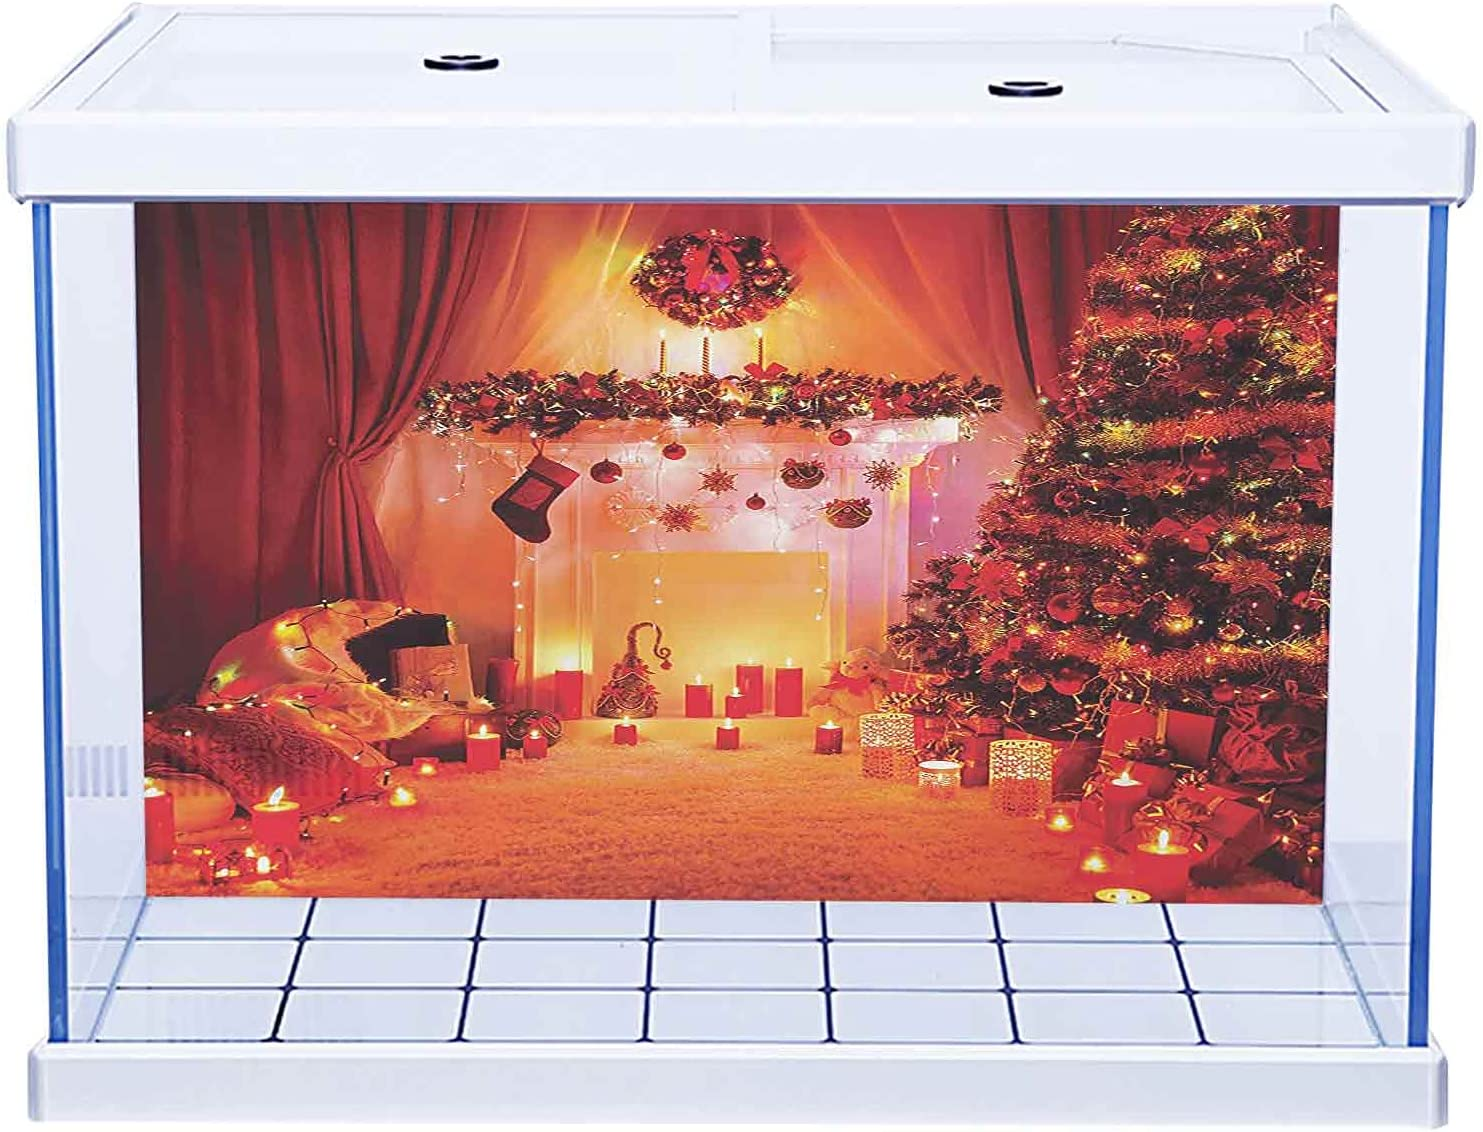 Aquarium Sticker 3D One Side Fish Max 81% OFF New Special price in Year Tank Christmas The